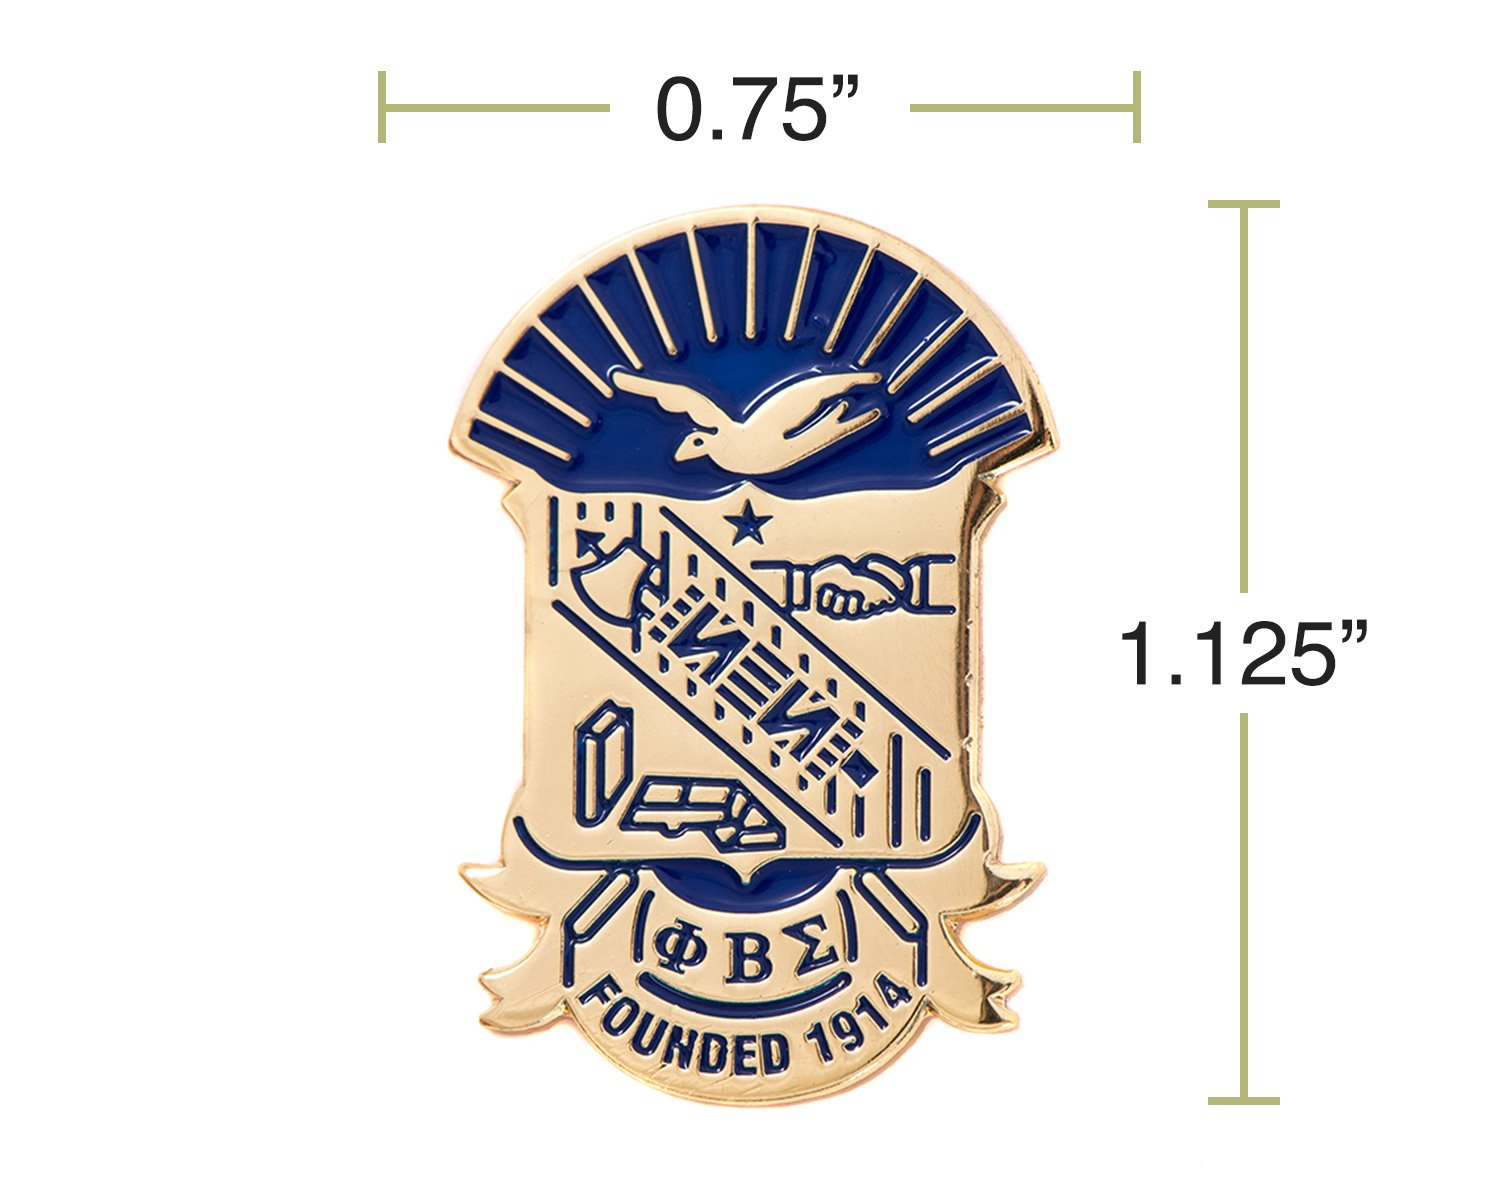 Desert Cactus Phi Beta Sigma Fraternity Crest Lapel Pin Enamel Greek Formal Wear Blazer Jacket (Gold Color Lapel Pin) by Desert Cactus (Image #2)